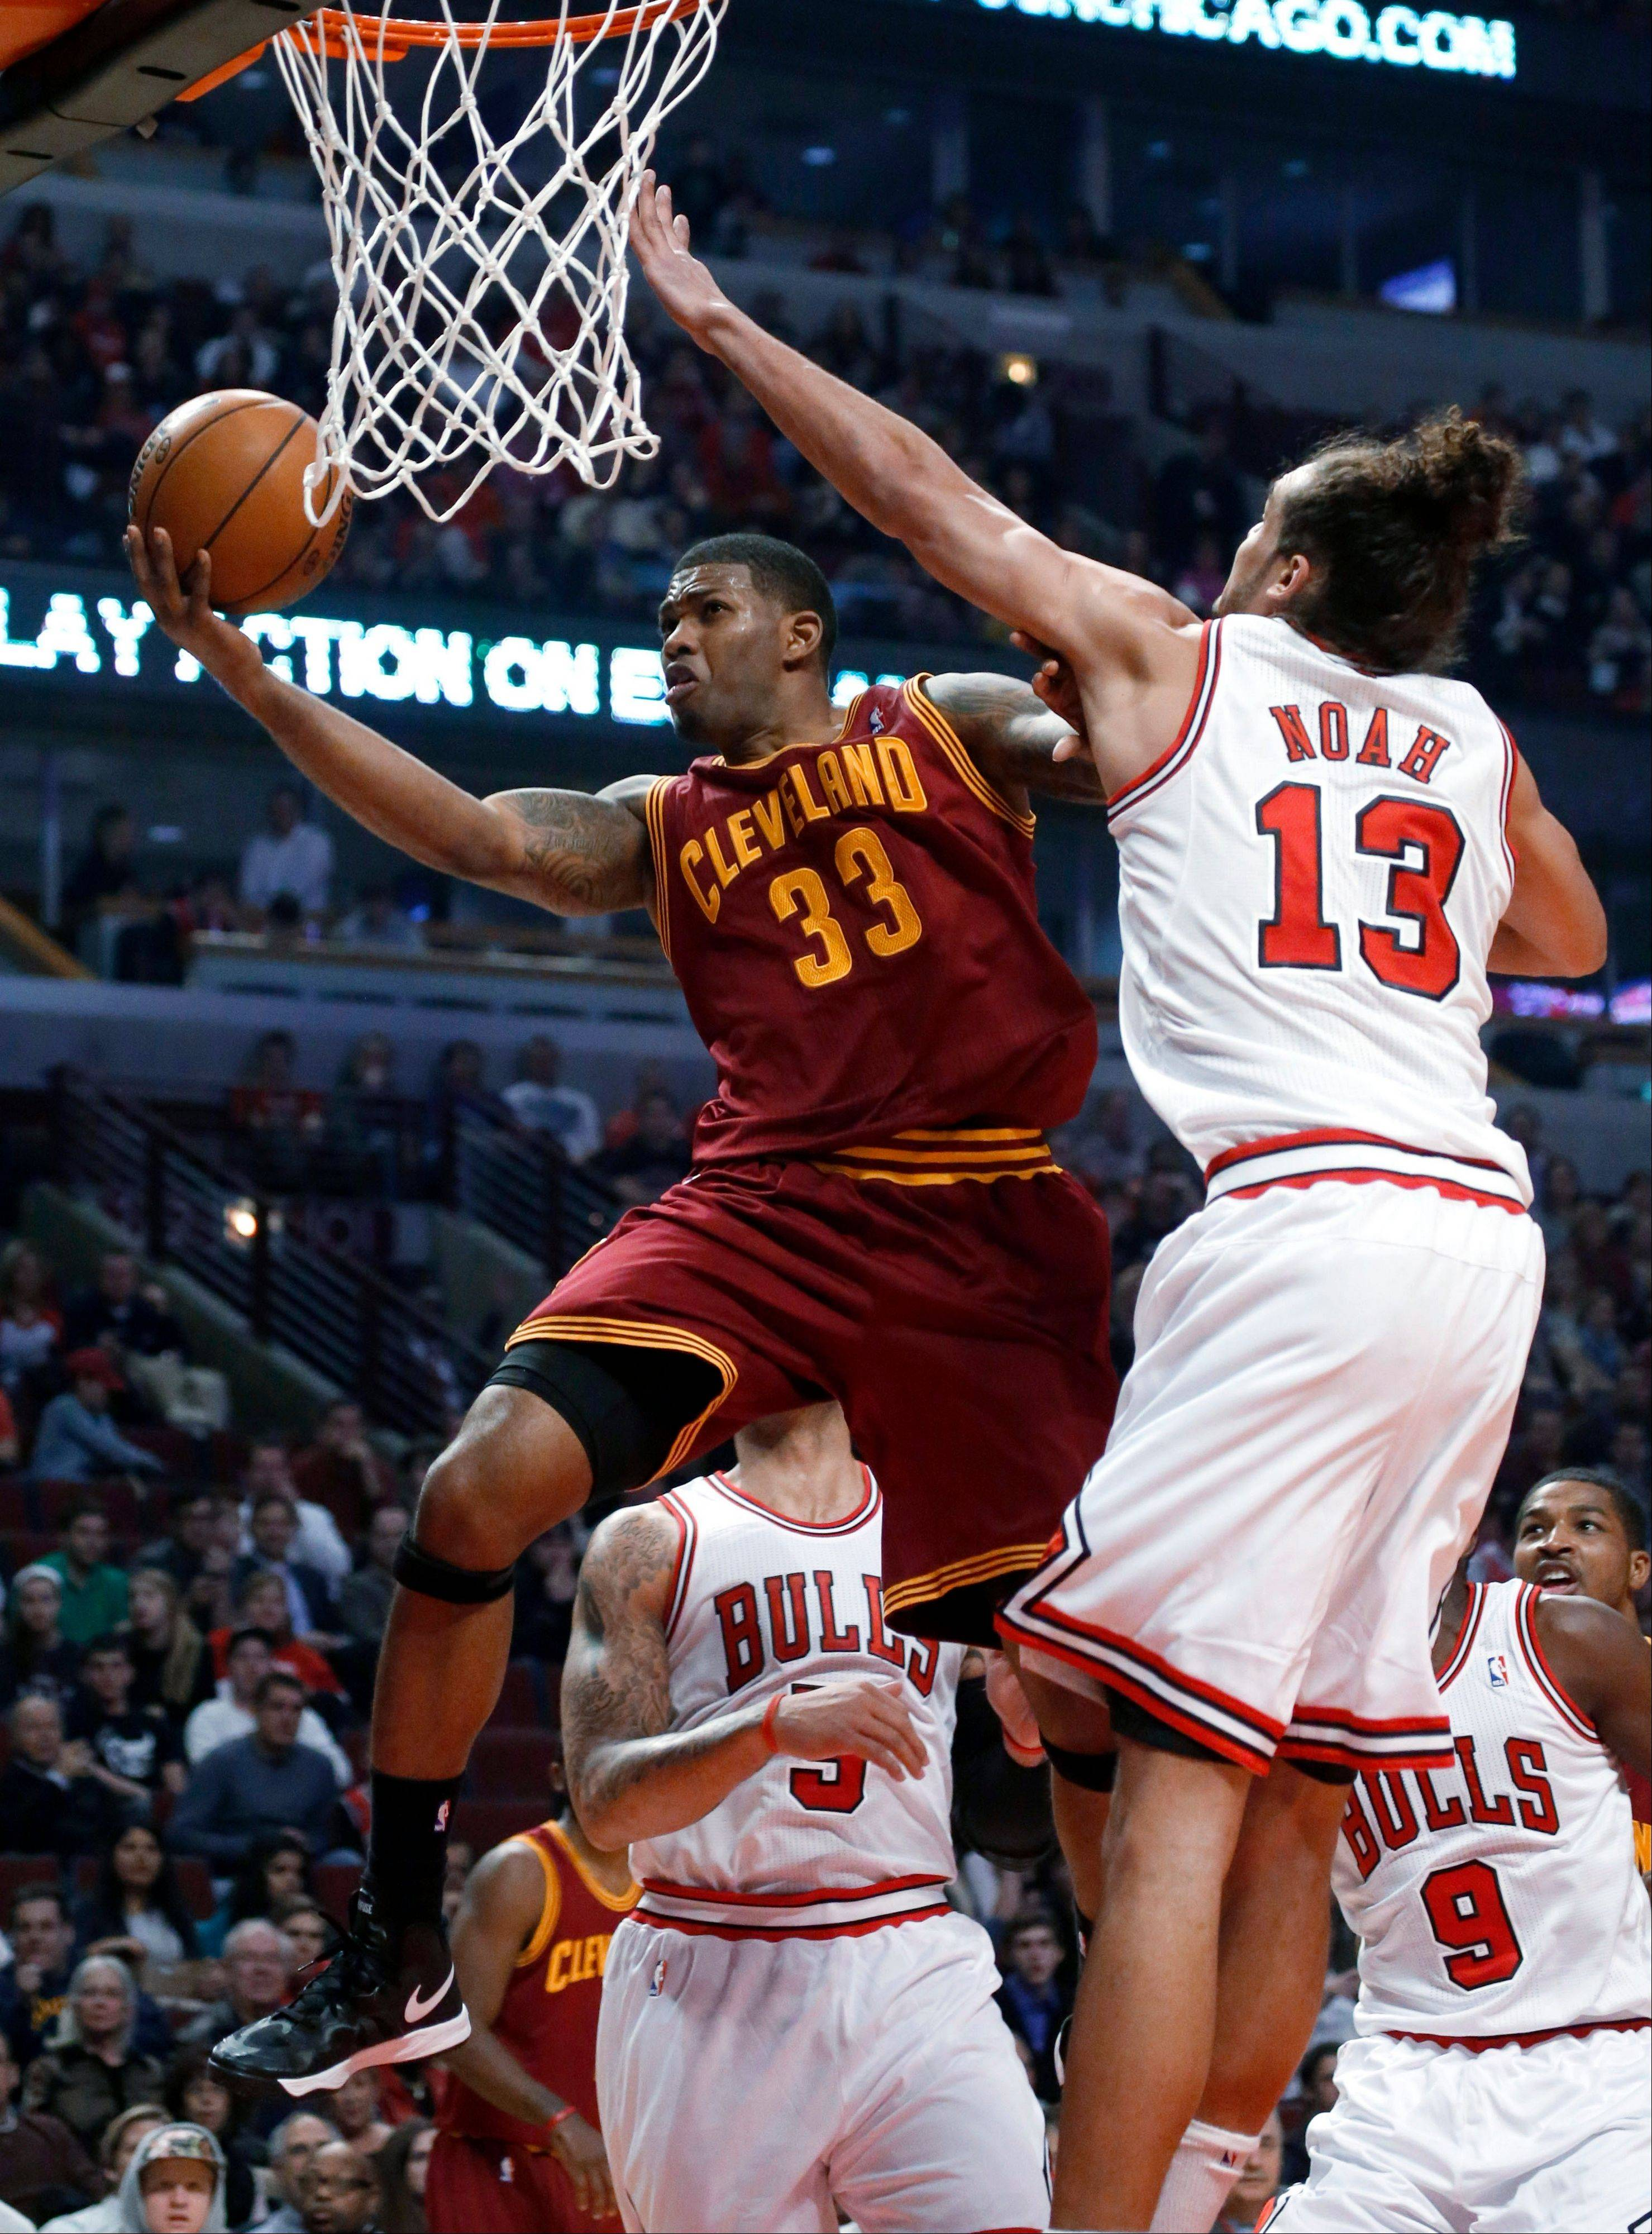 Cavaliers forward Alonzo Gee drives under pressure from Bulls center Joakim Noah during the first half Monday at the United Center.